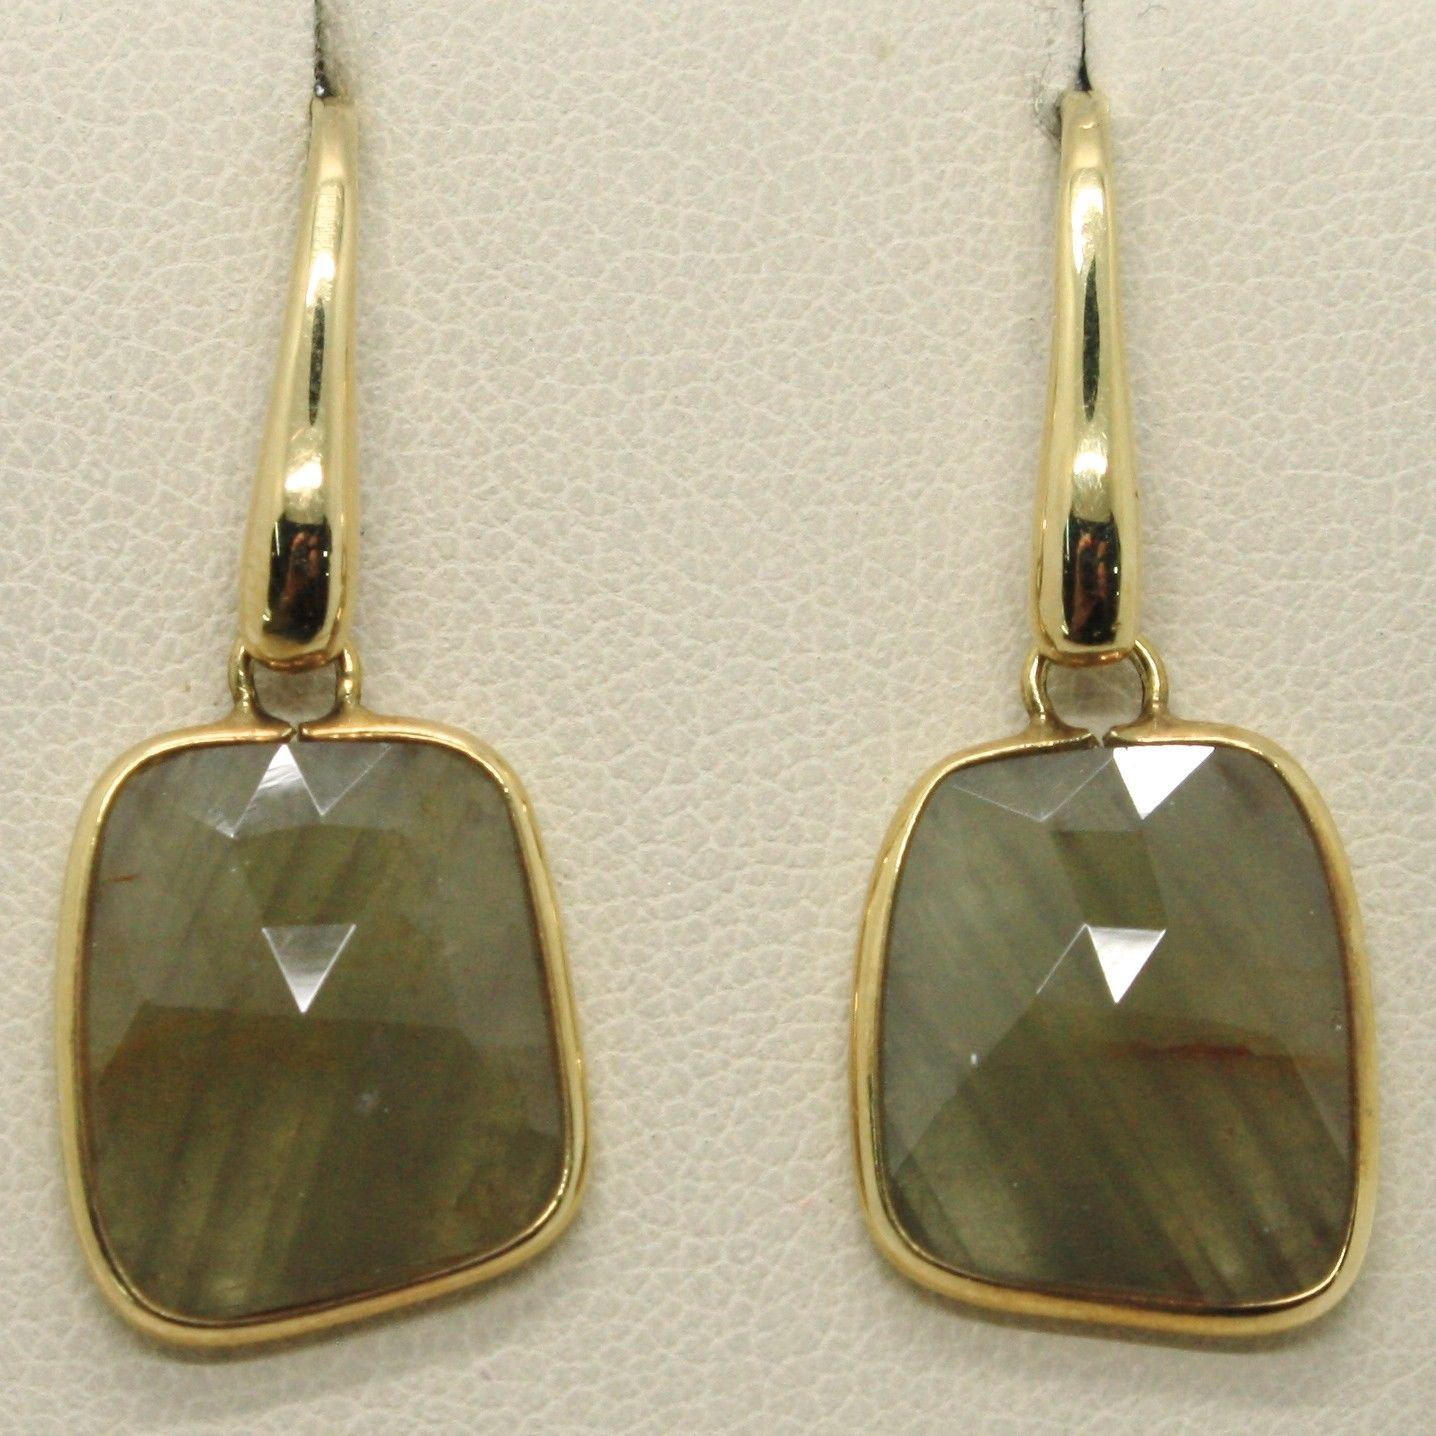 9K YELLOW GOLD PENDANT HOOK EARRINGS, DROP BROWN GREEN SAPPHIRE, MADE IN ITALY